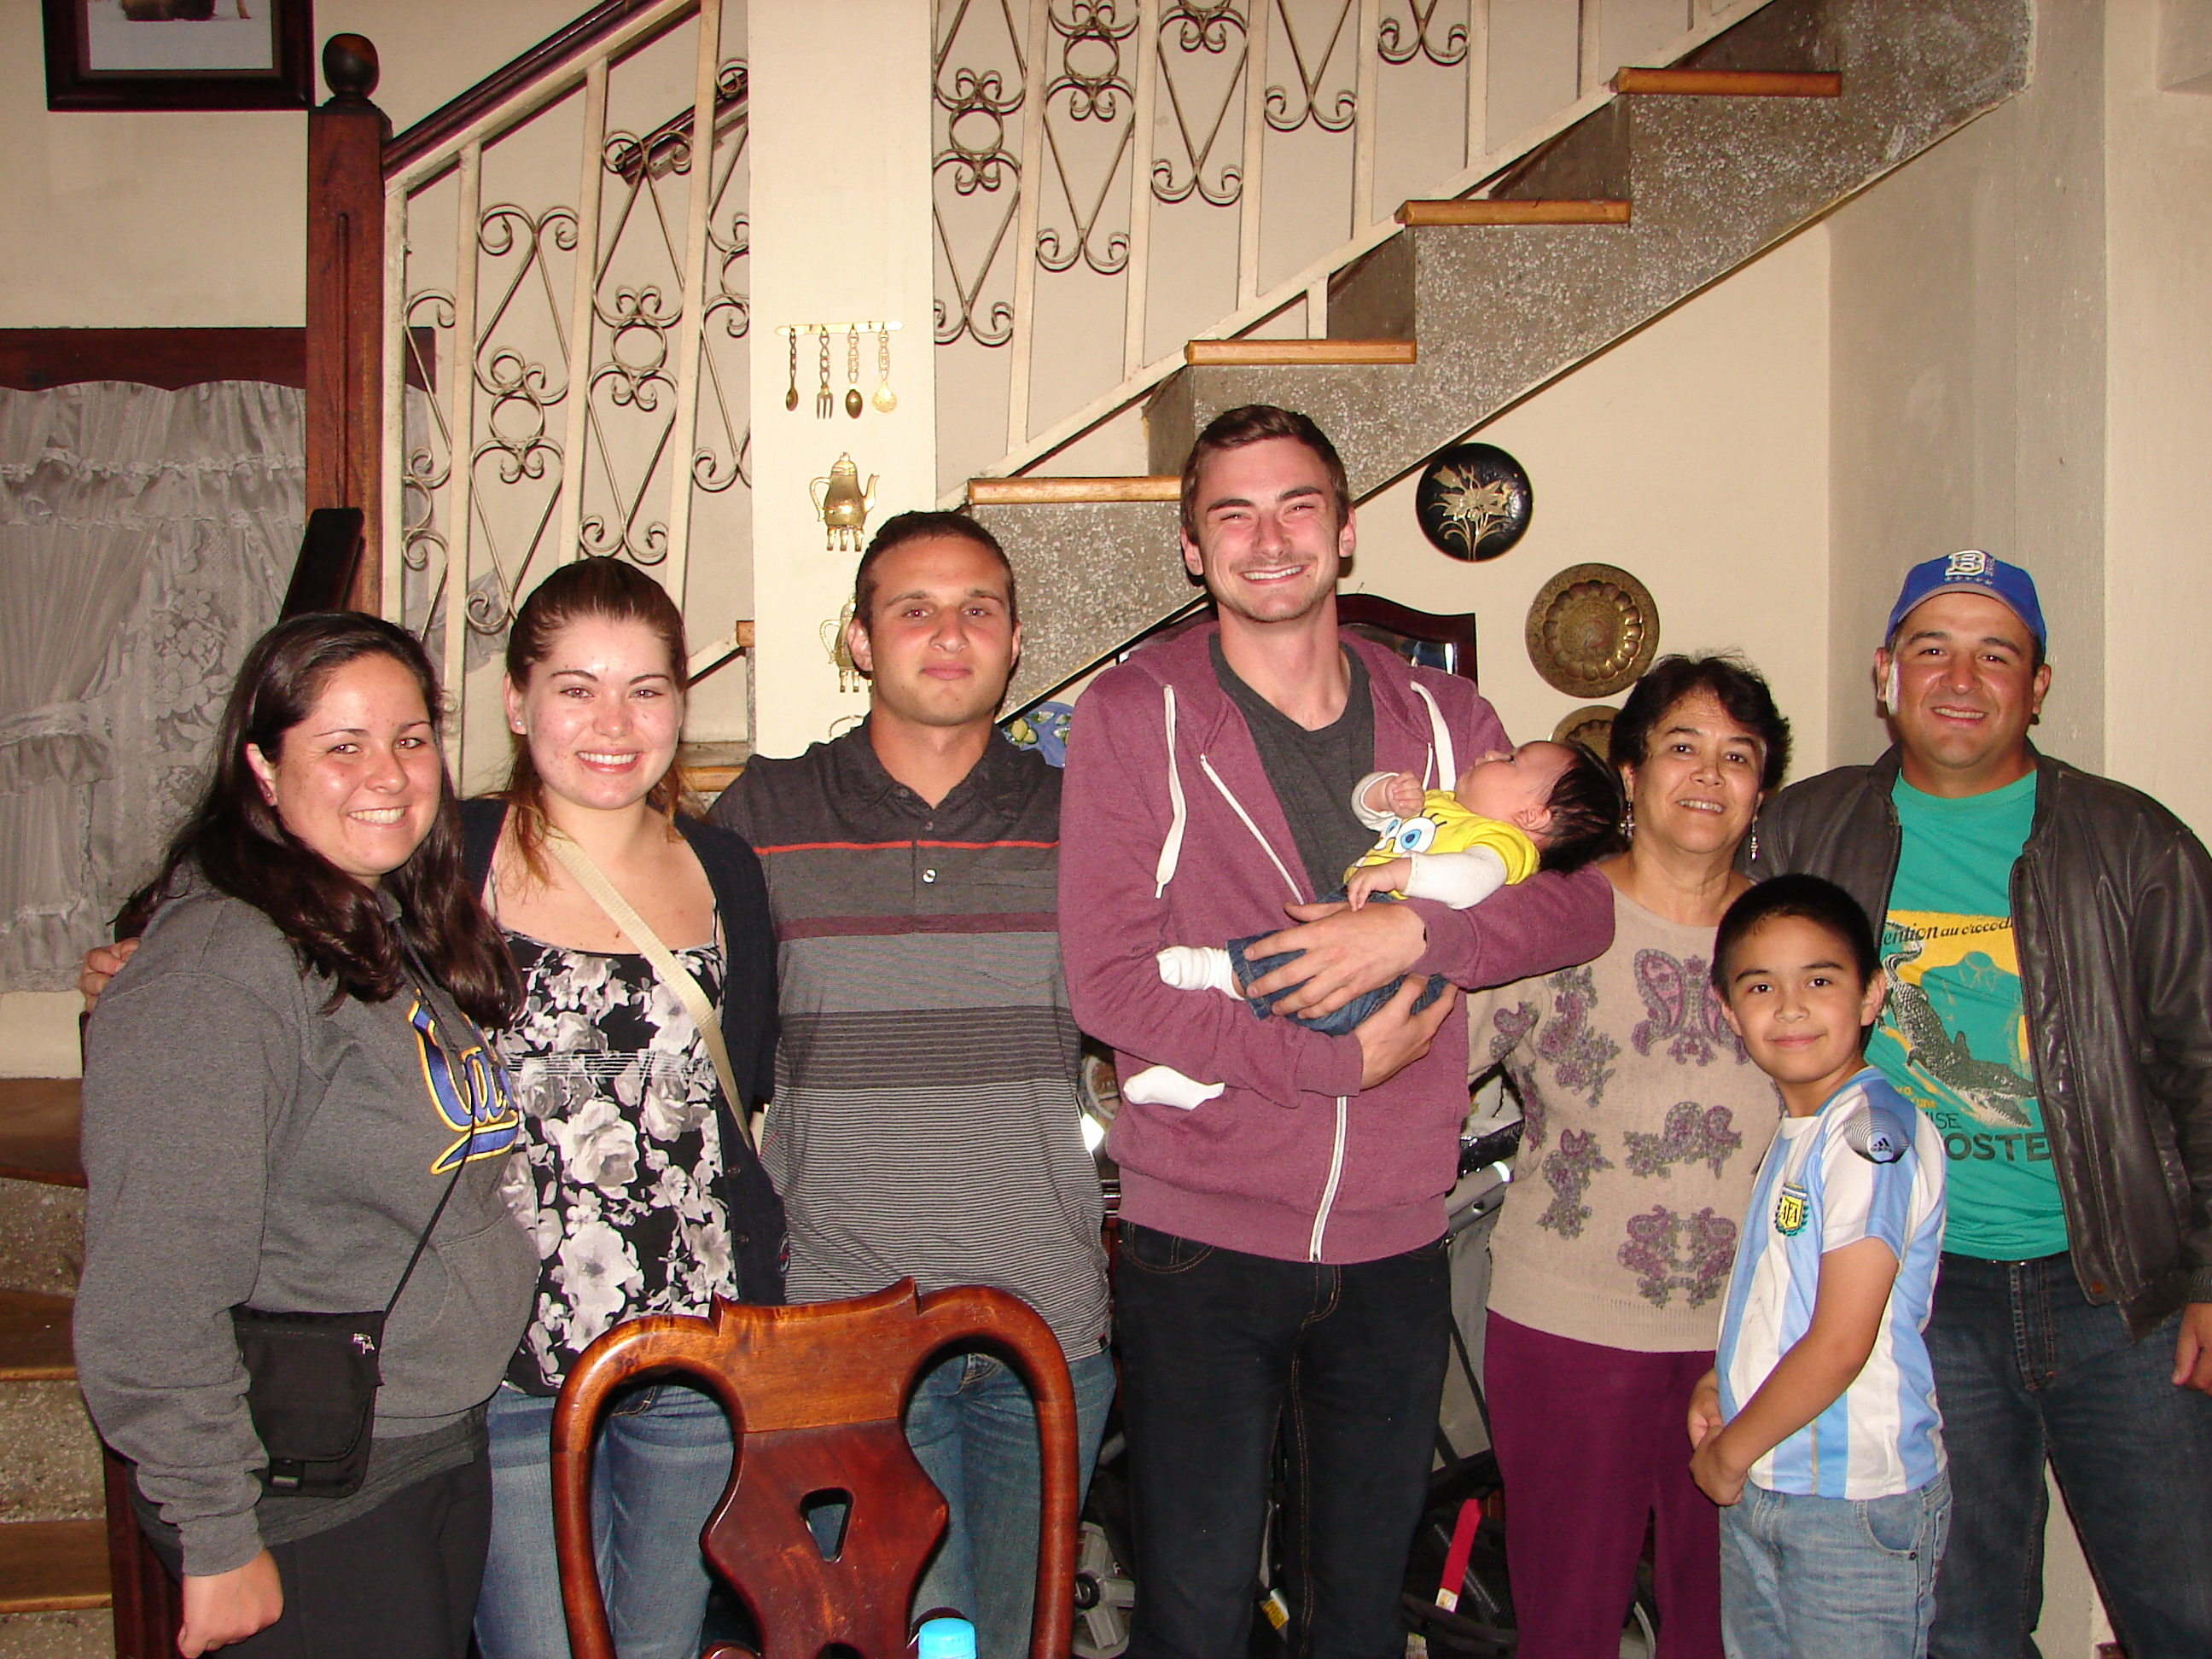 Volunteer in GUATEMALA – Orphanage, Teaching, Animal Rescue and PreMed Program with A Broader View Volunteers